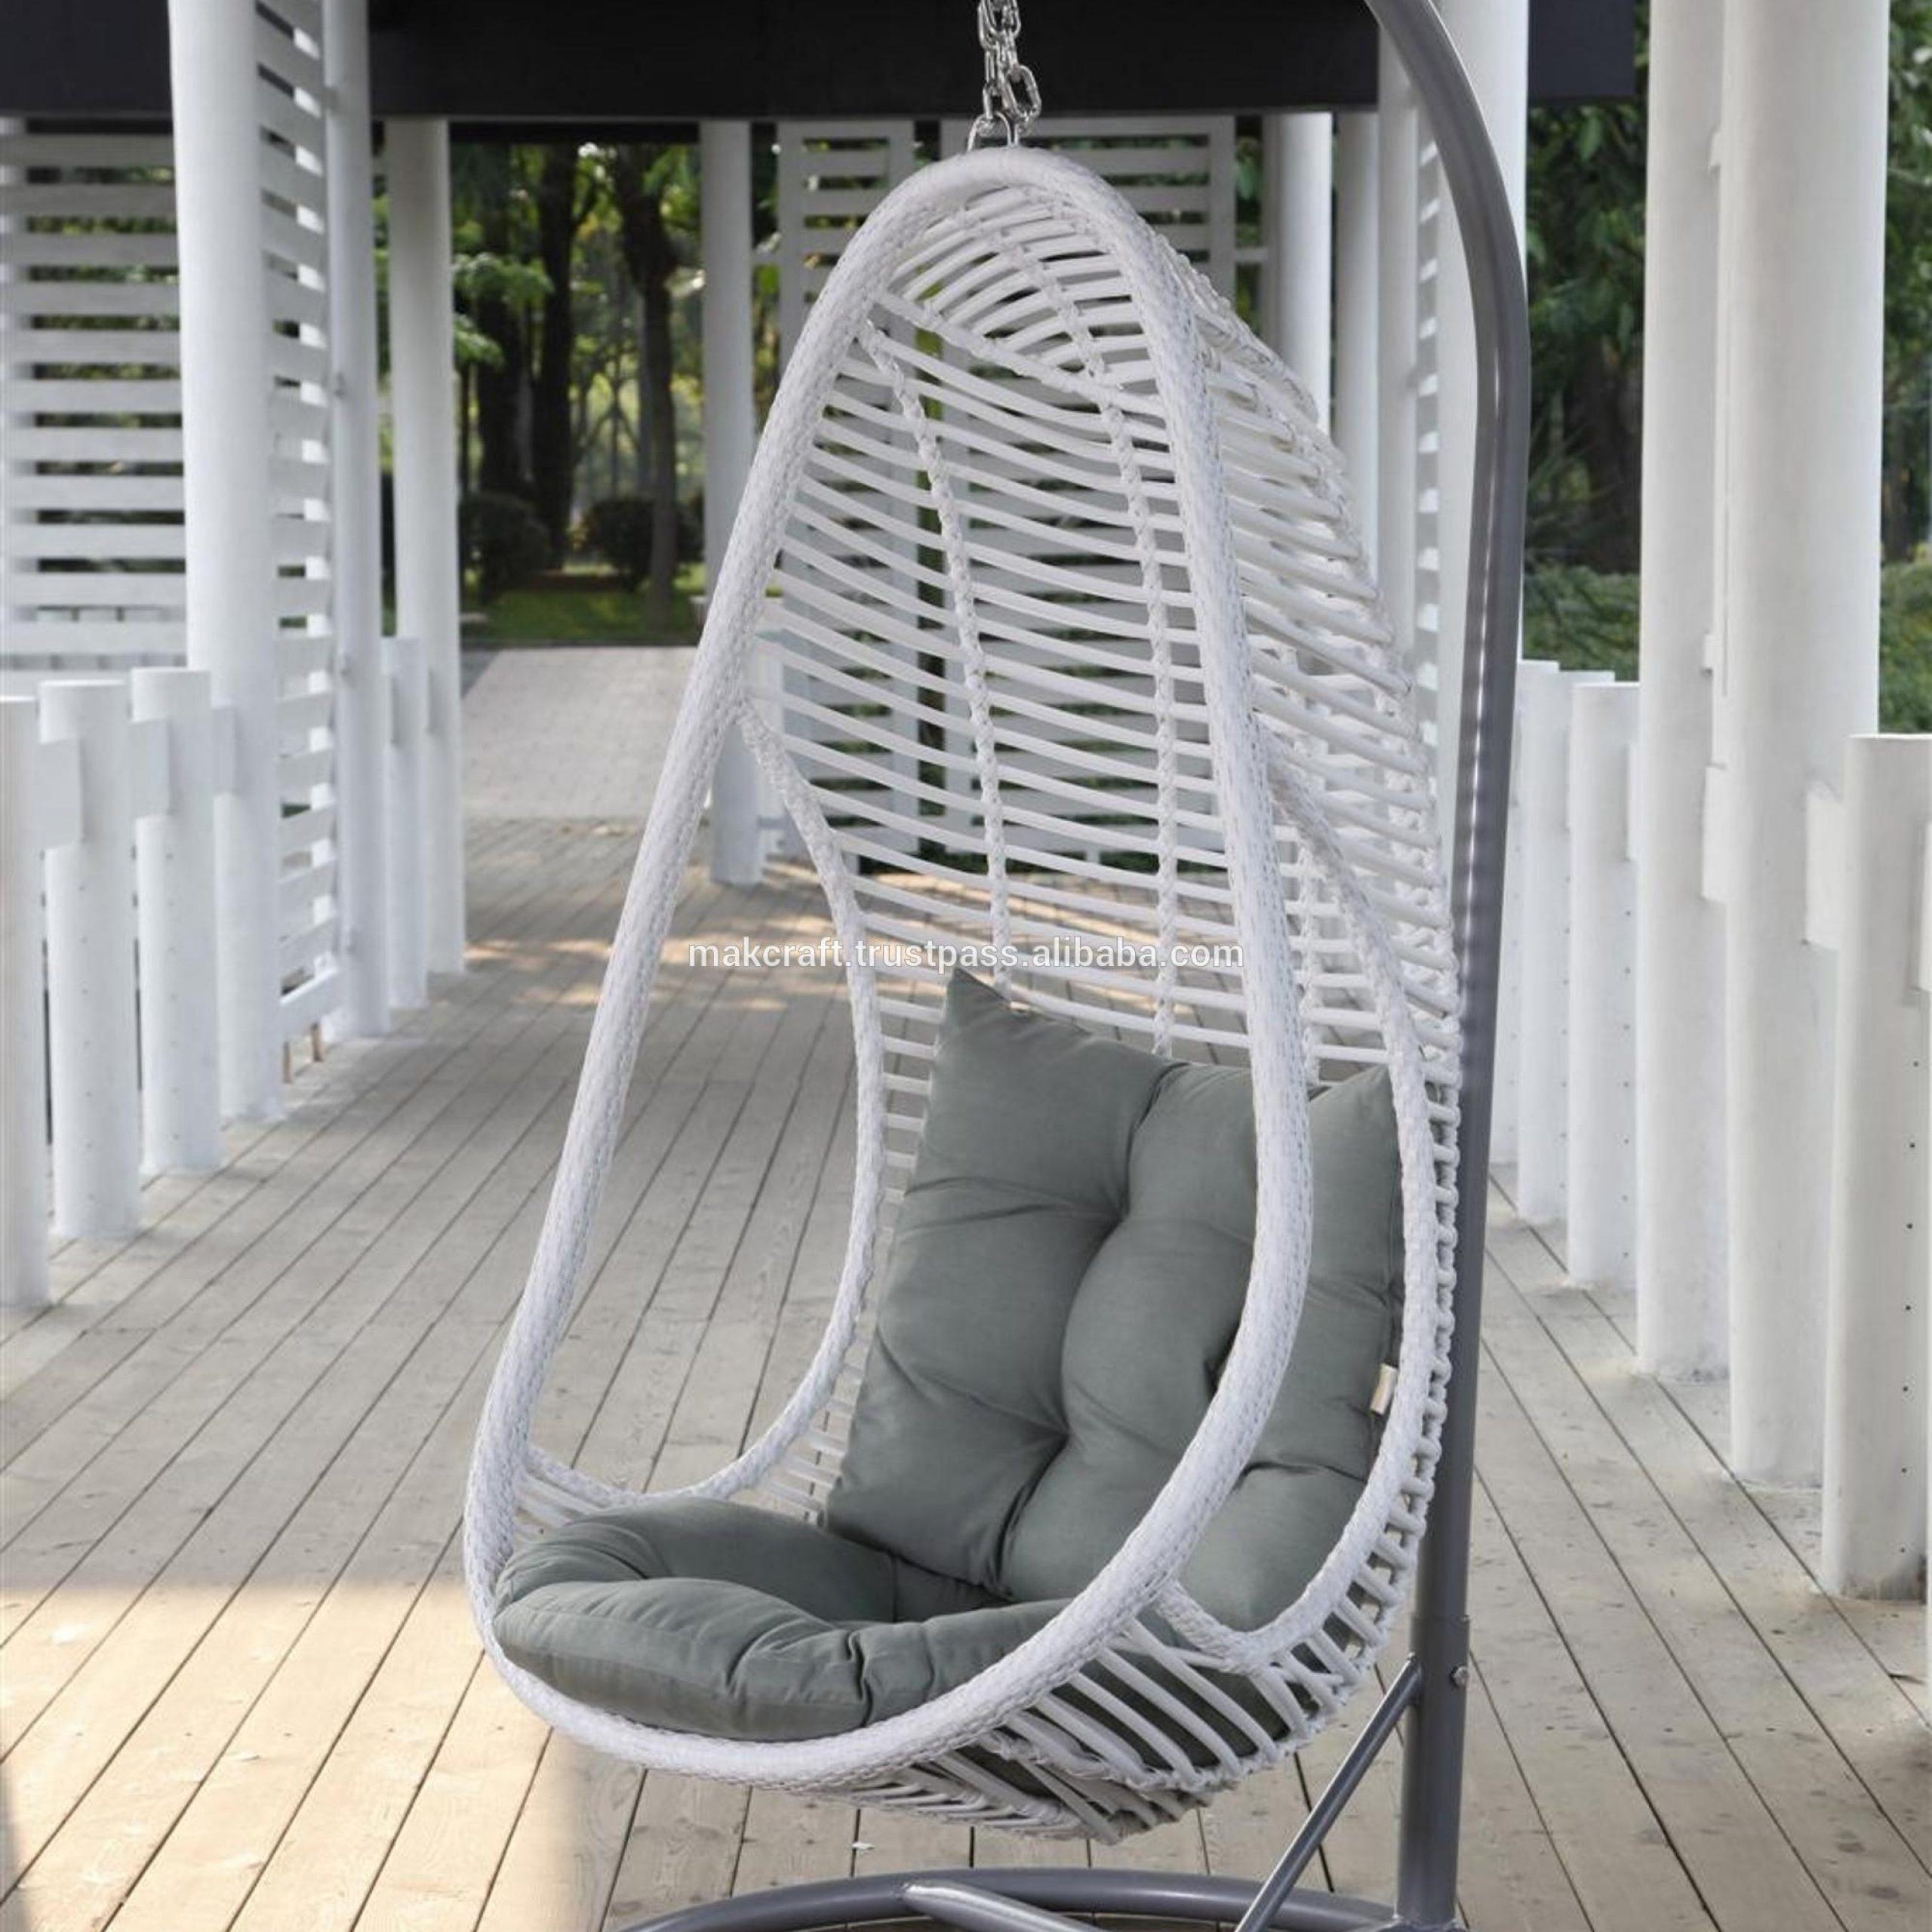 Wicker Rattan Outdoor Garden Swing Egg Chair – Garden Rattan Swing Egg Chair – Patio Swing Egg Chair With Steel Frame Furniture – Buy Wicker Hanging Throughout Rattan Garden Swing Chairs (View 5 of 25)